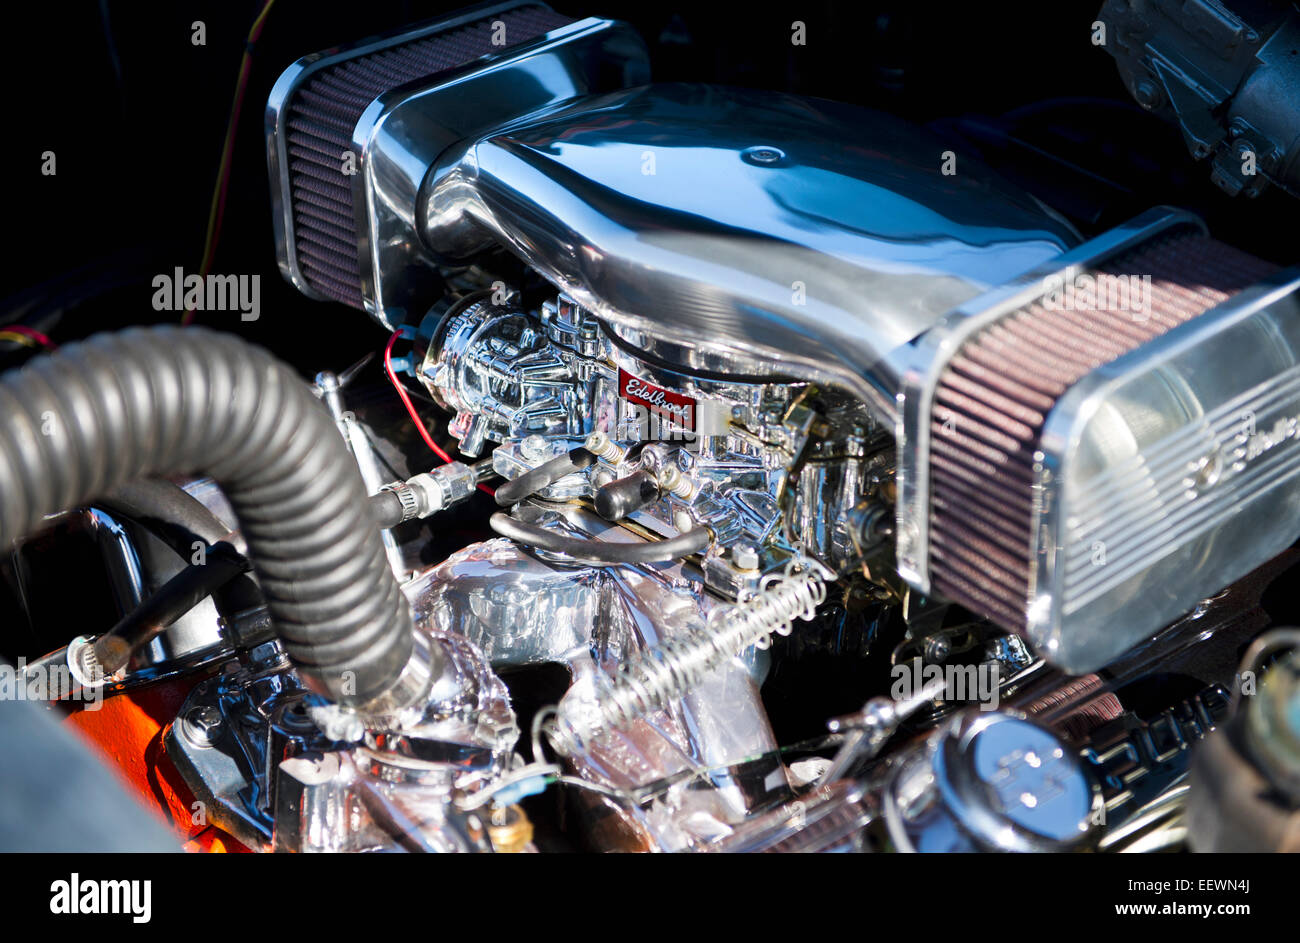 V8 American Chrome High Performance Custom Car Engine with Edelbrock Manifold Stock Photo